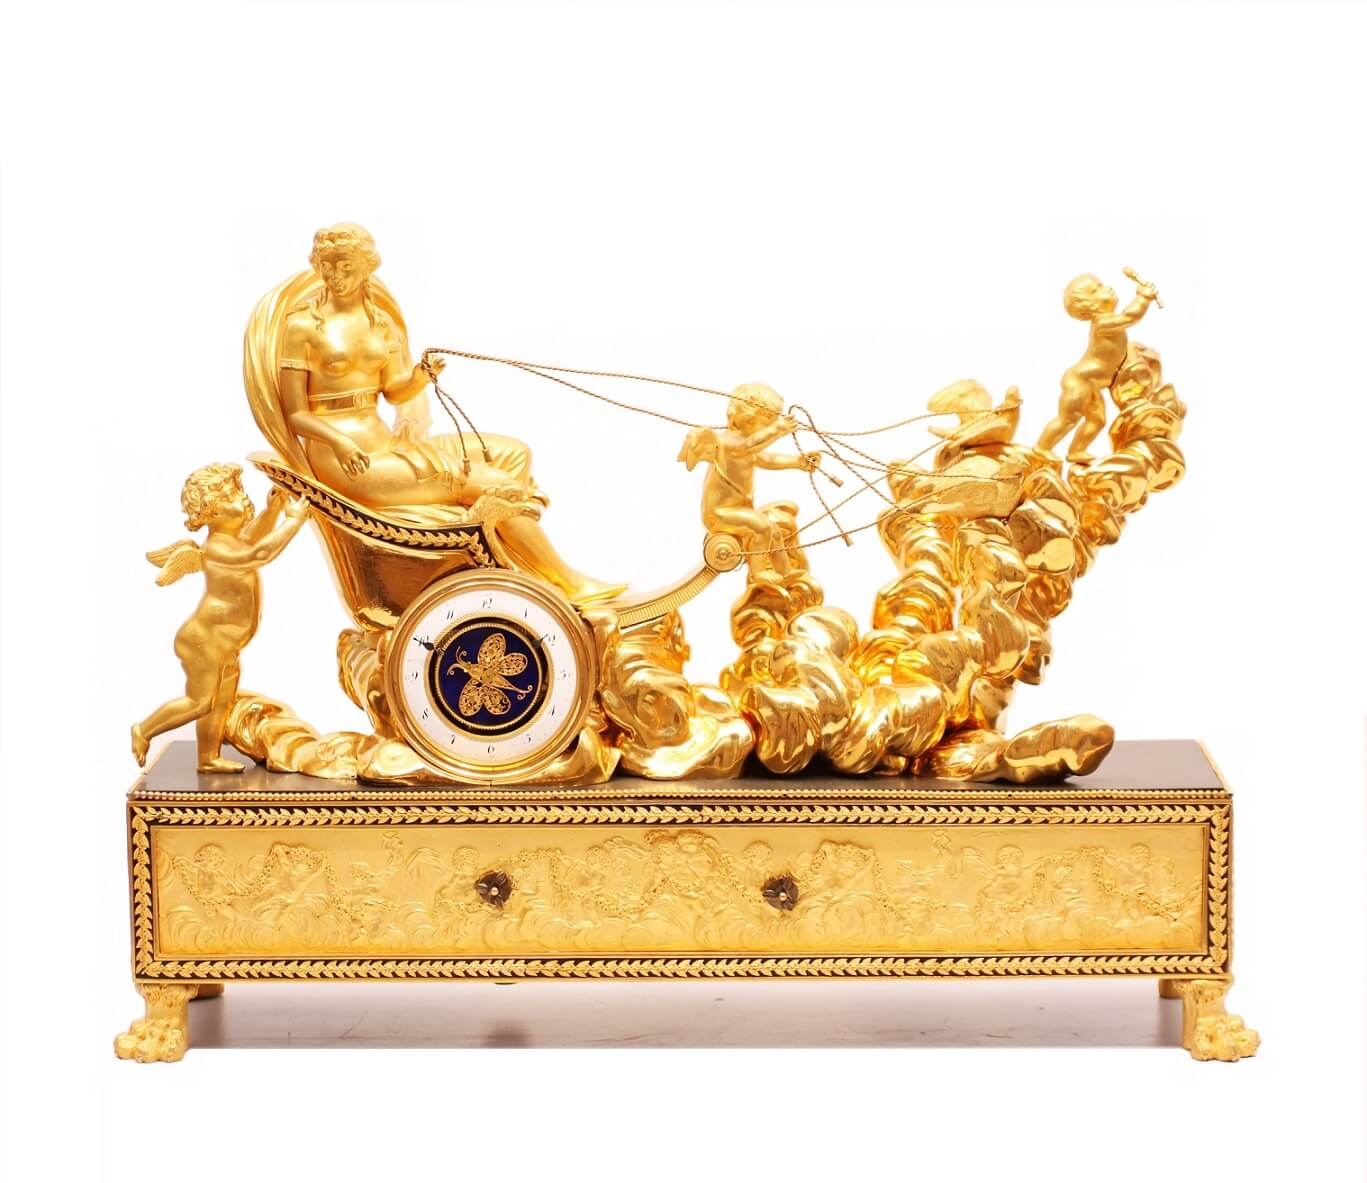 French Empire Ormolu Chariot Mantel Clock Automaton Deverberie Circa 1800